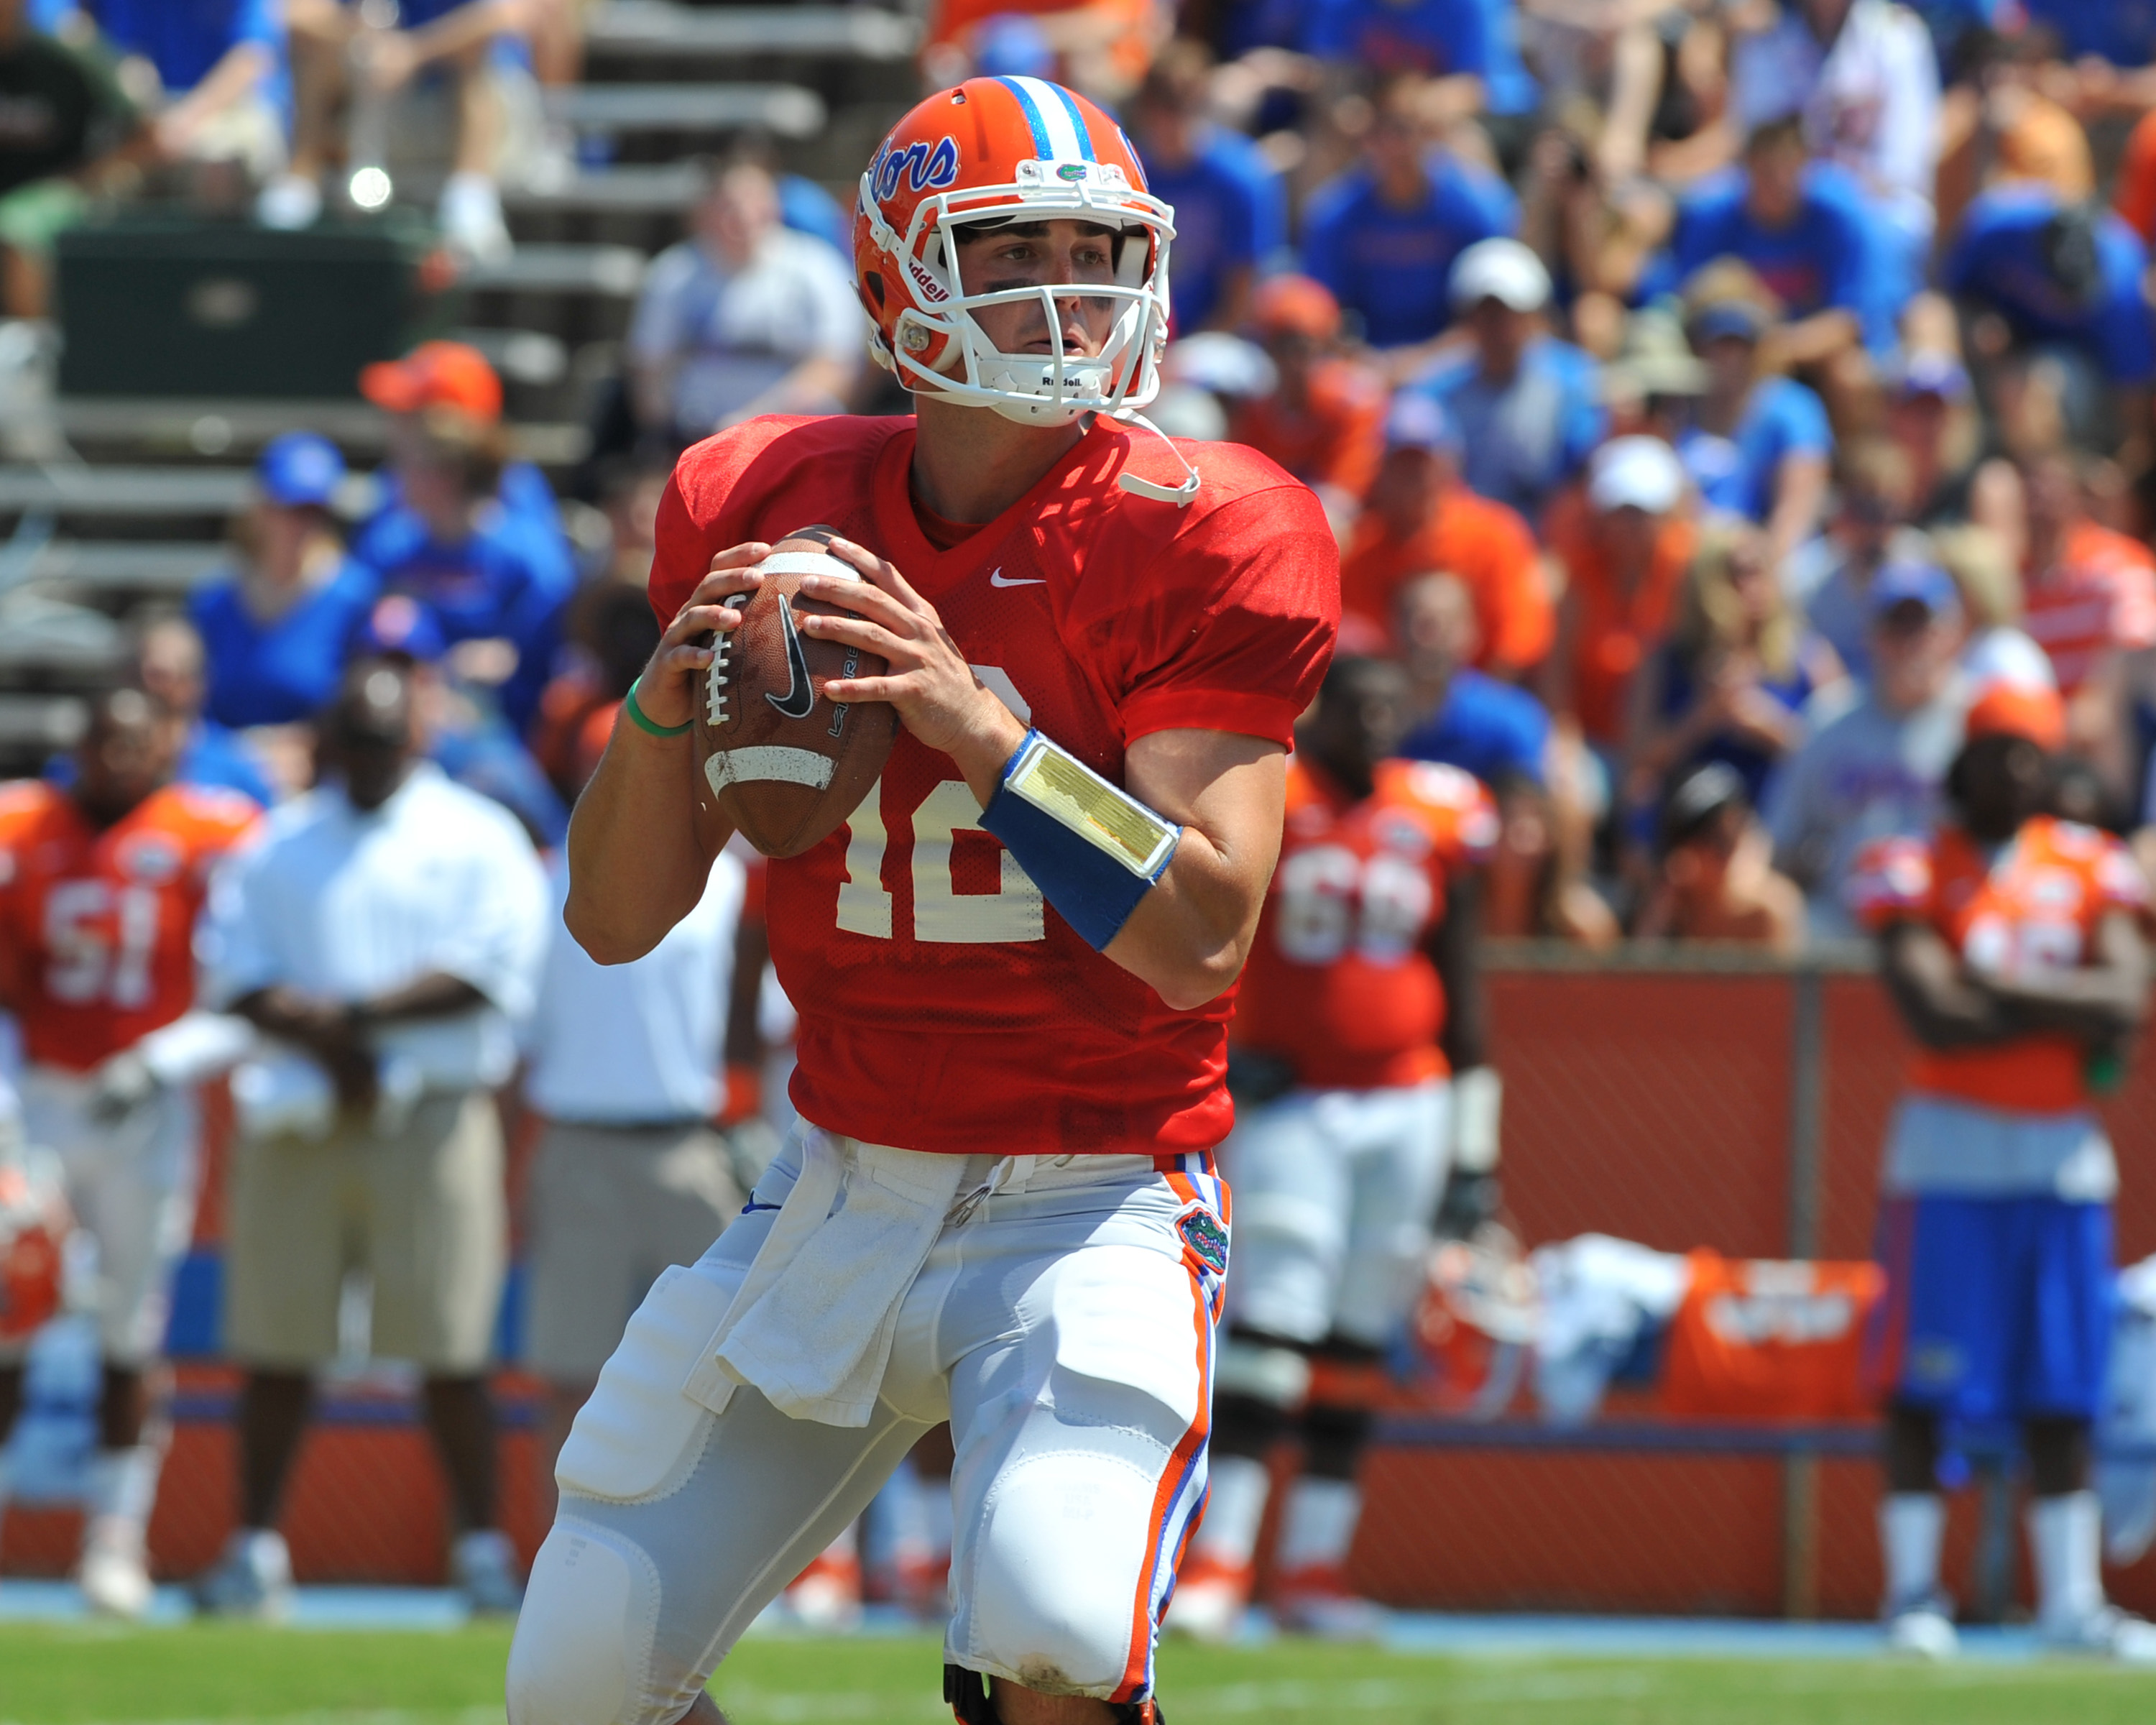 GAINESVILLE, FL - APRIL 9:  Quarterback John Brantley #12 of the Florida Gators sets to pass during the Orange and Blue spring football game April 9, 2011 at Ben Hill Griffin Stadium in Gainesville, Florida.  (Photo by Al Messerschmidt/Getty Images)